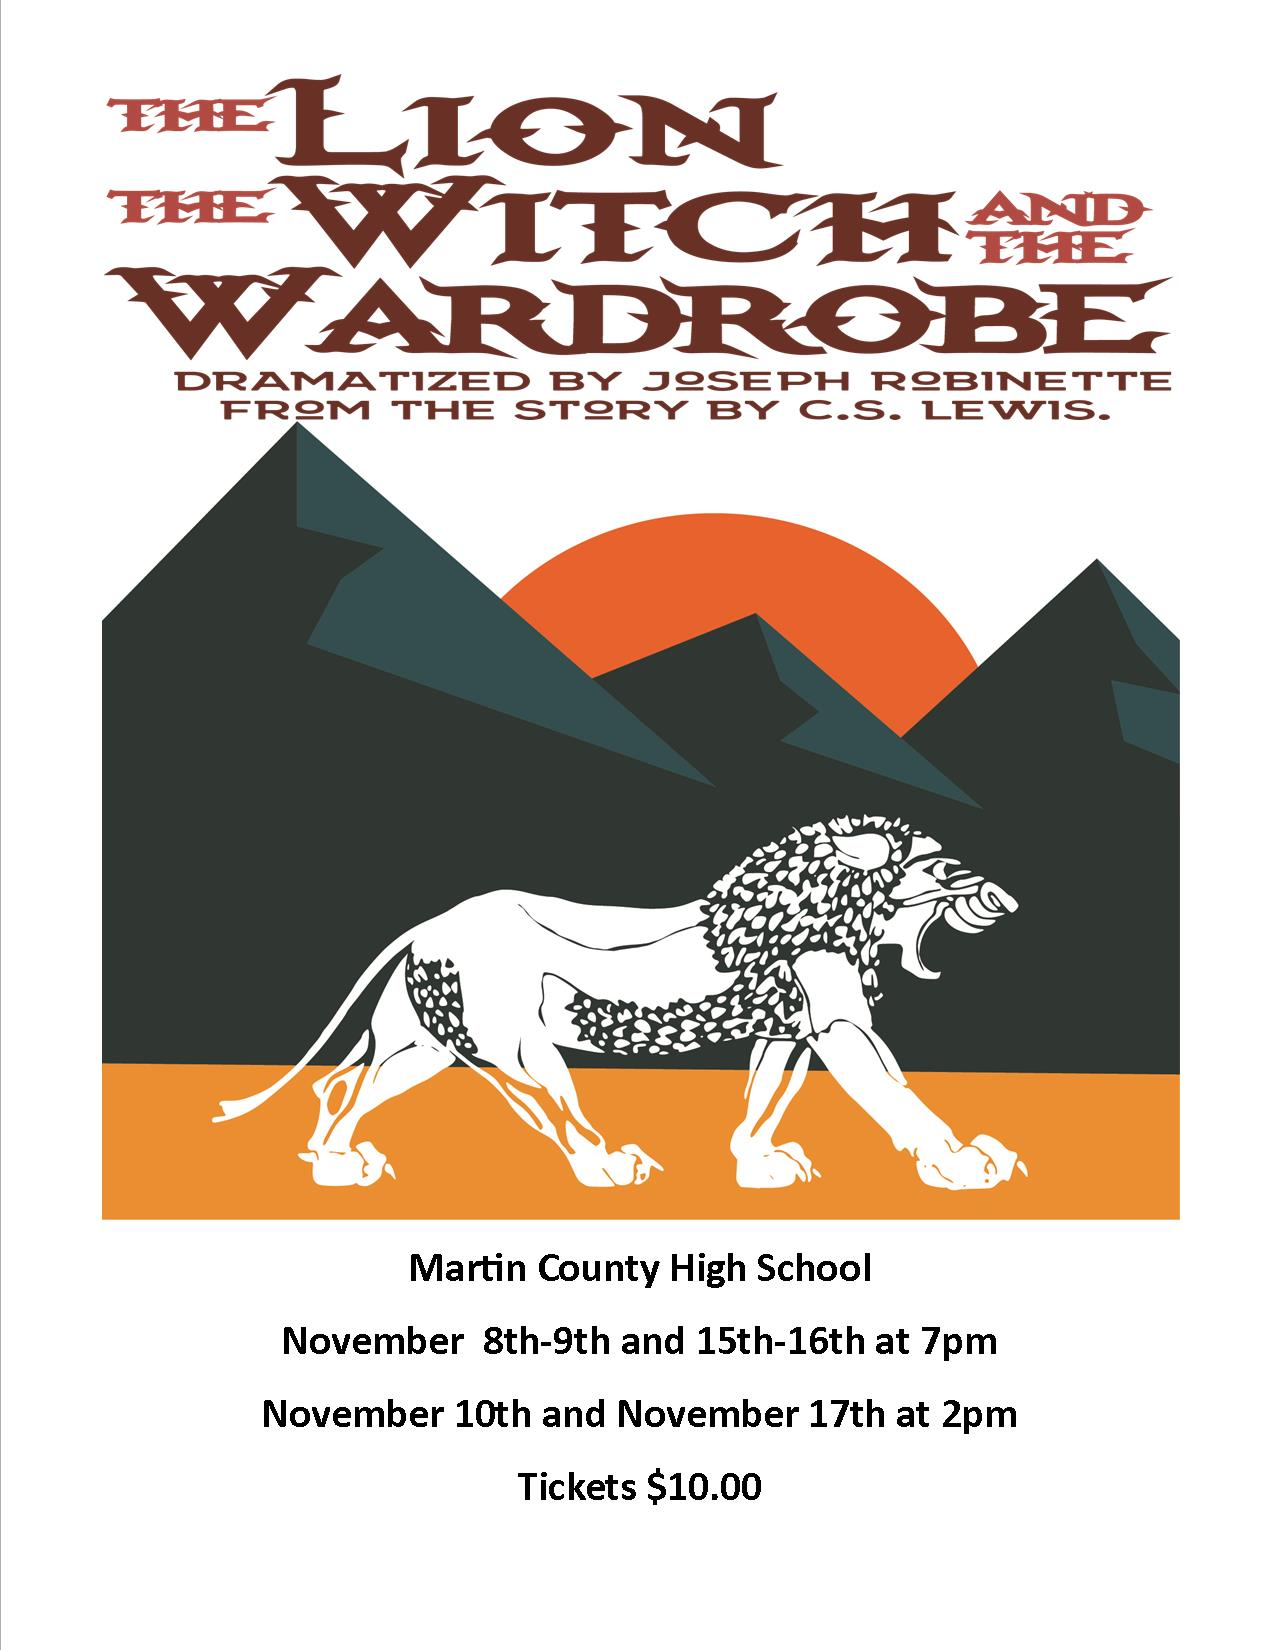 Martin County High School Presents The Lion, The Witch and the Wardrobe